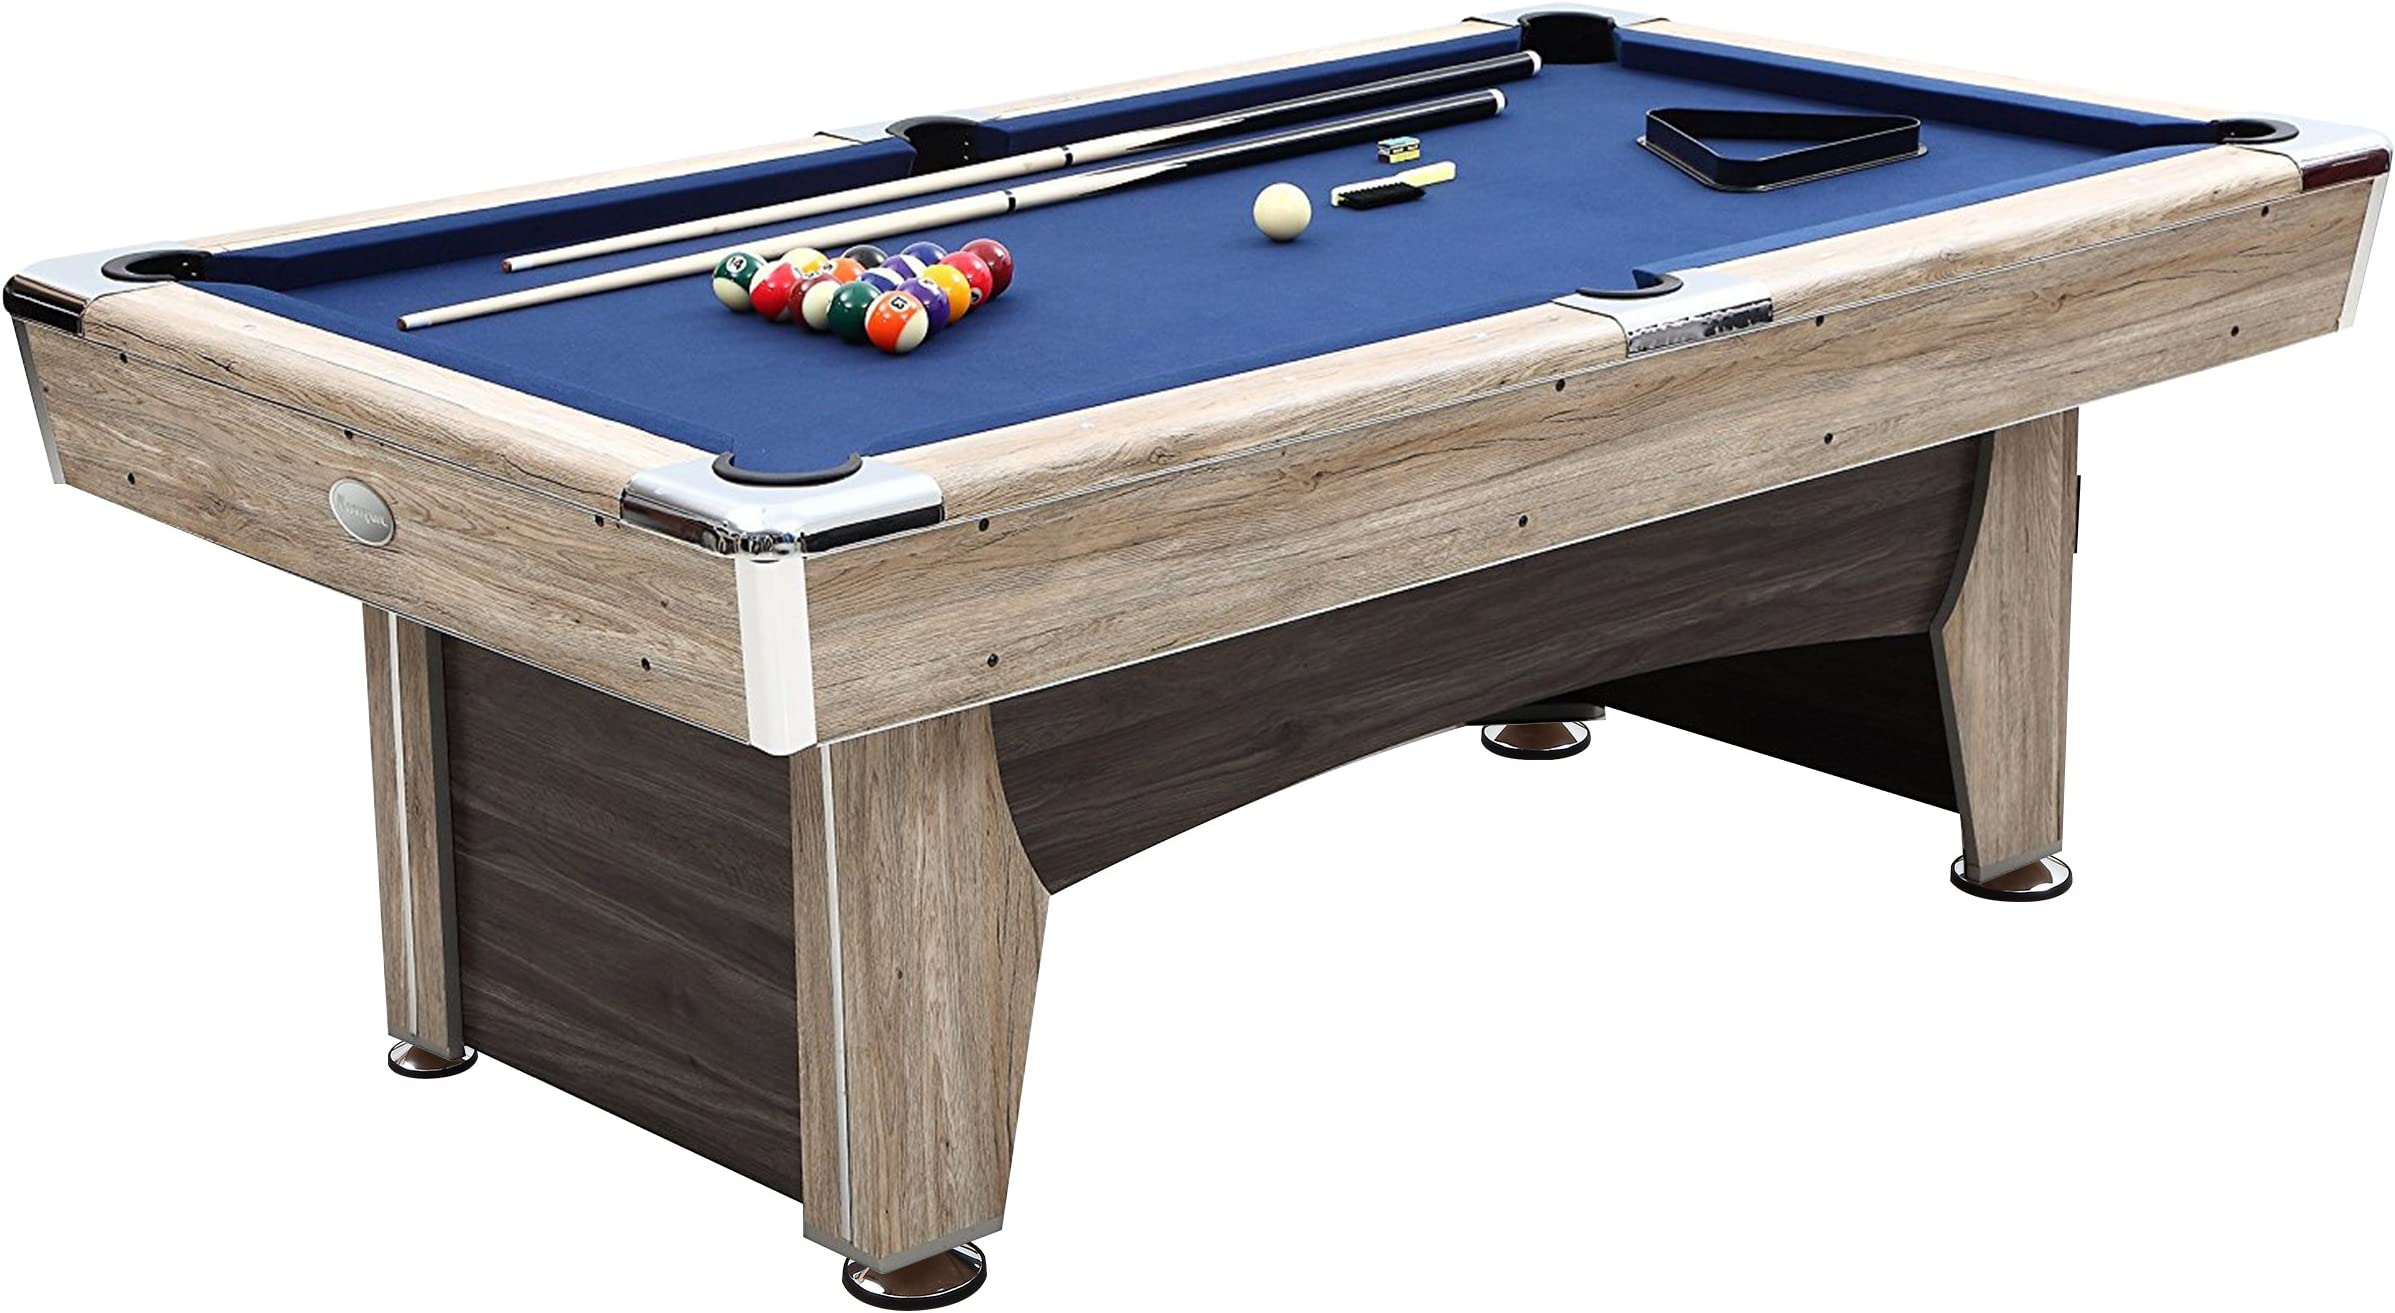 Harvil Beachcomber Indoor Pool Table 84 Inches with Complete Accessories Set  sc 1 st  Amazon.com & Pool \u0026 Billiards Tables | Amazon.com: Pool \u0026 Billiards